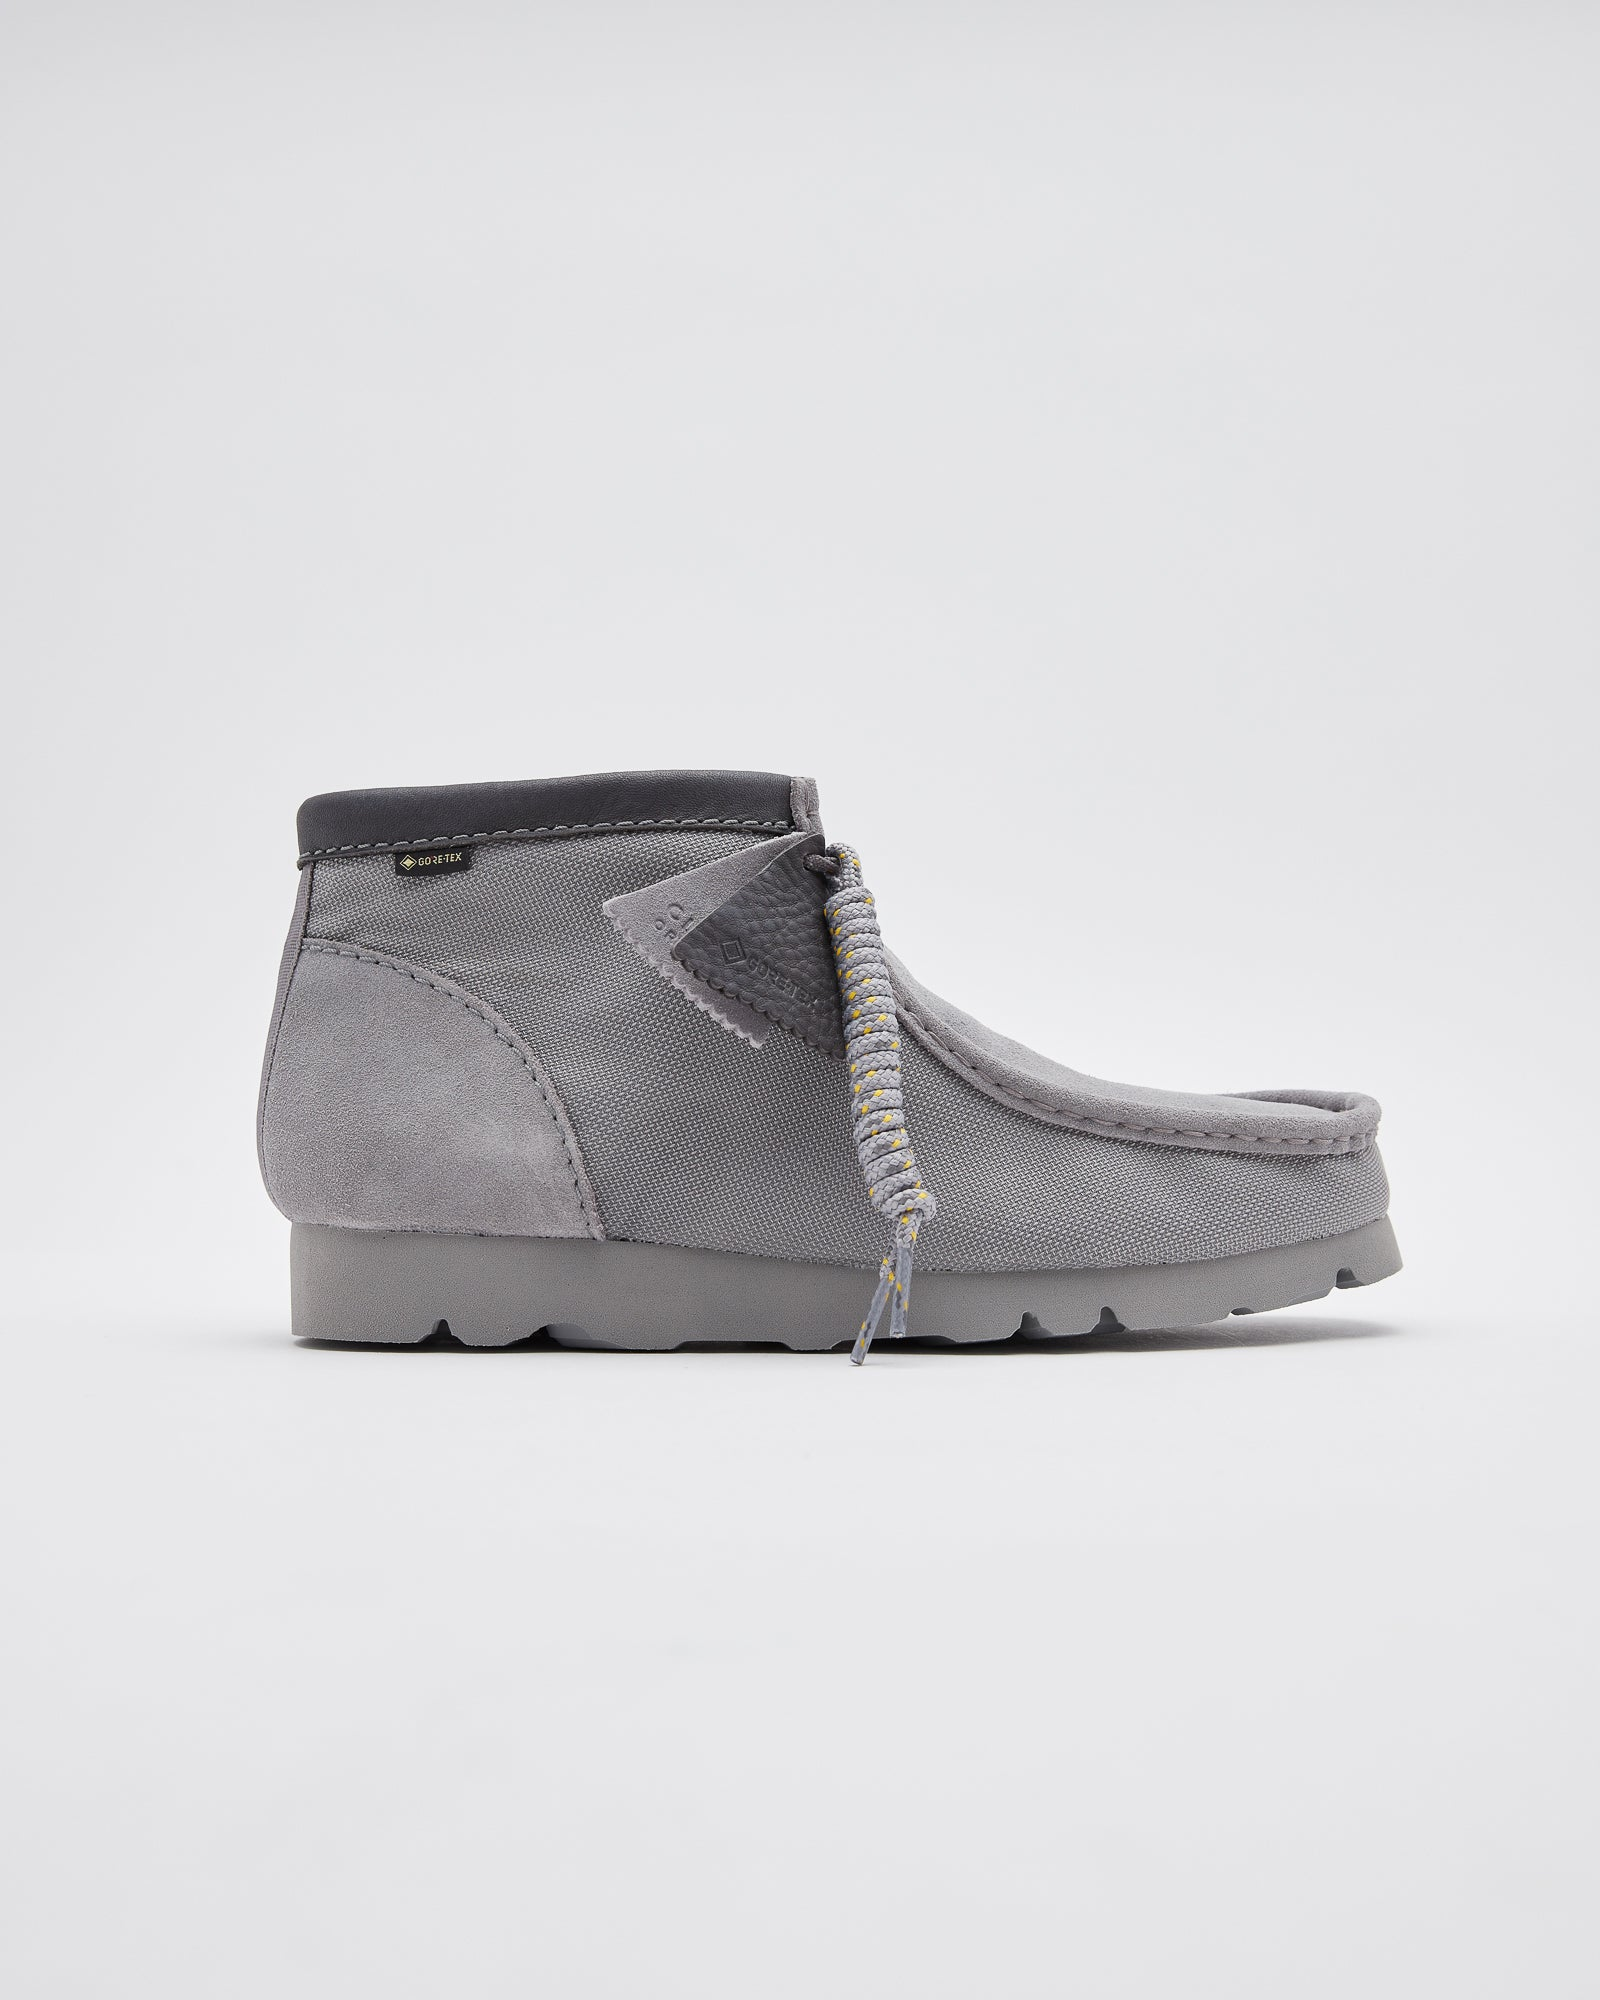 Wallabee BT GTX in Light Gray